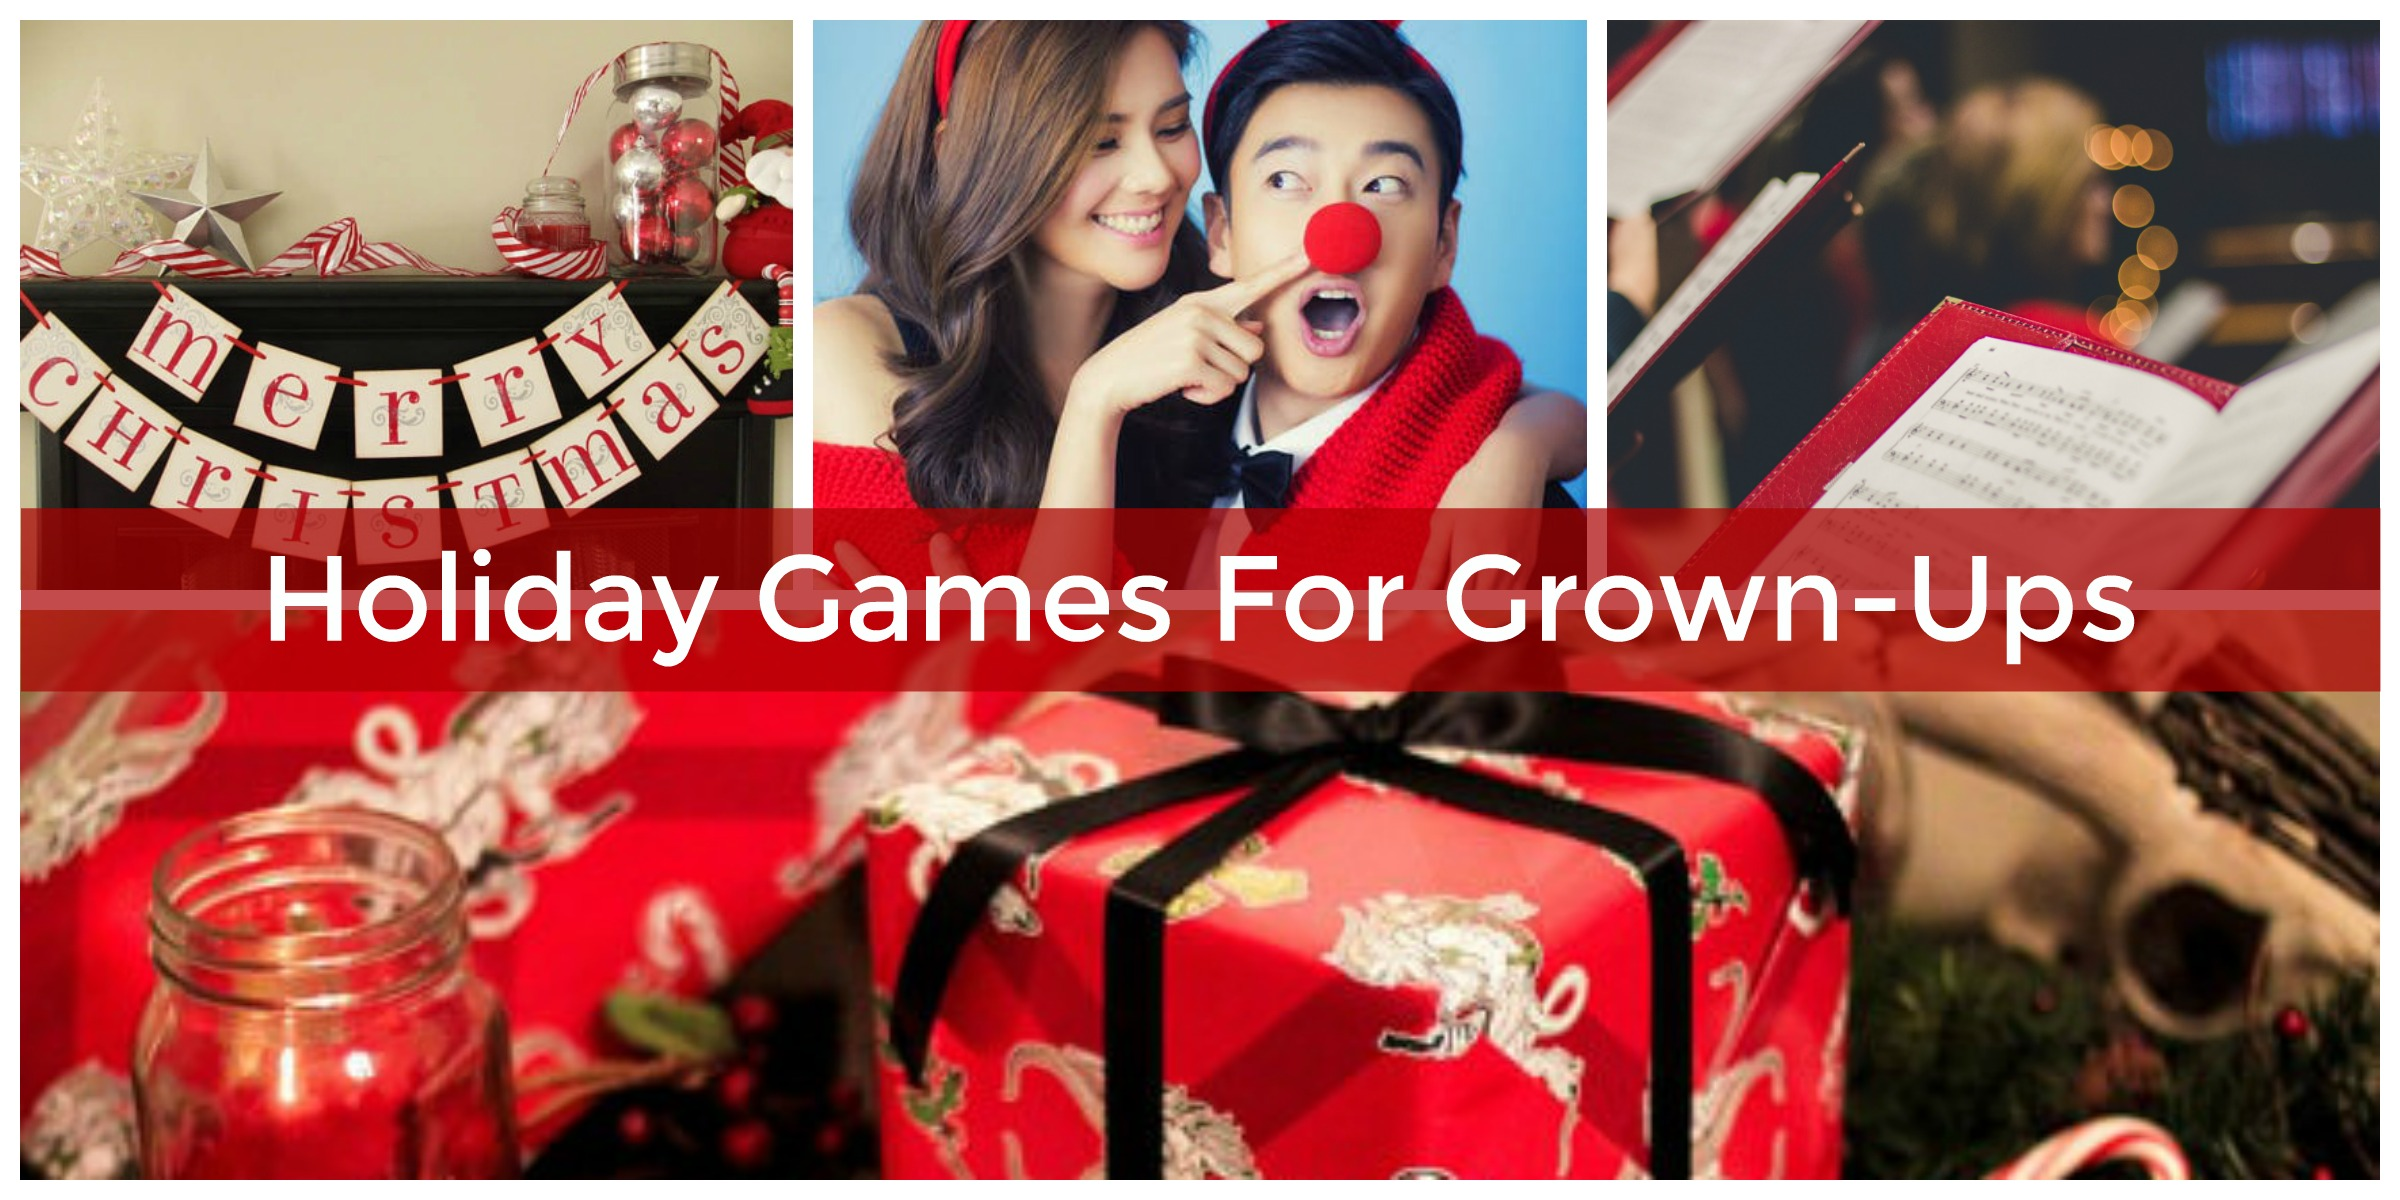 Quirky Christmas Party Games for Adults